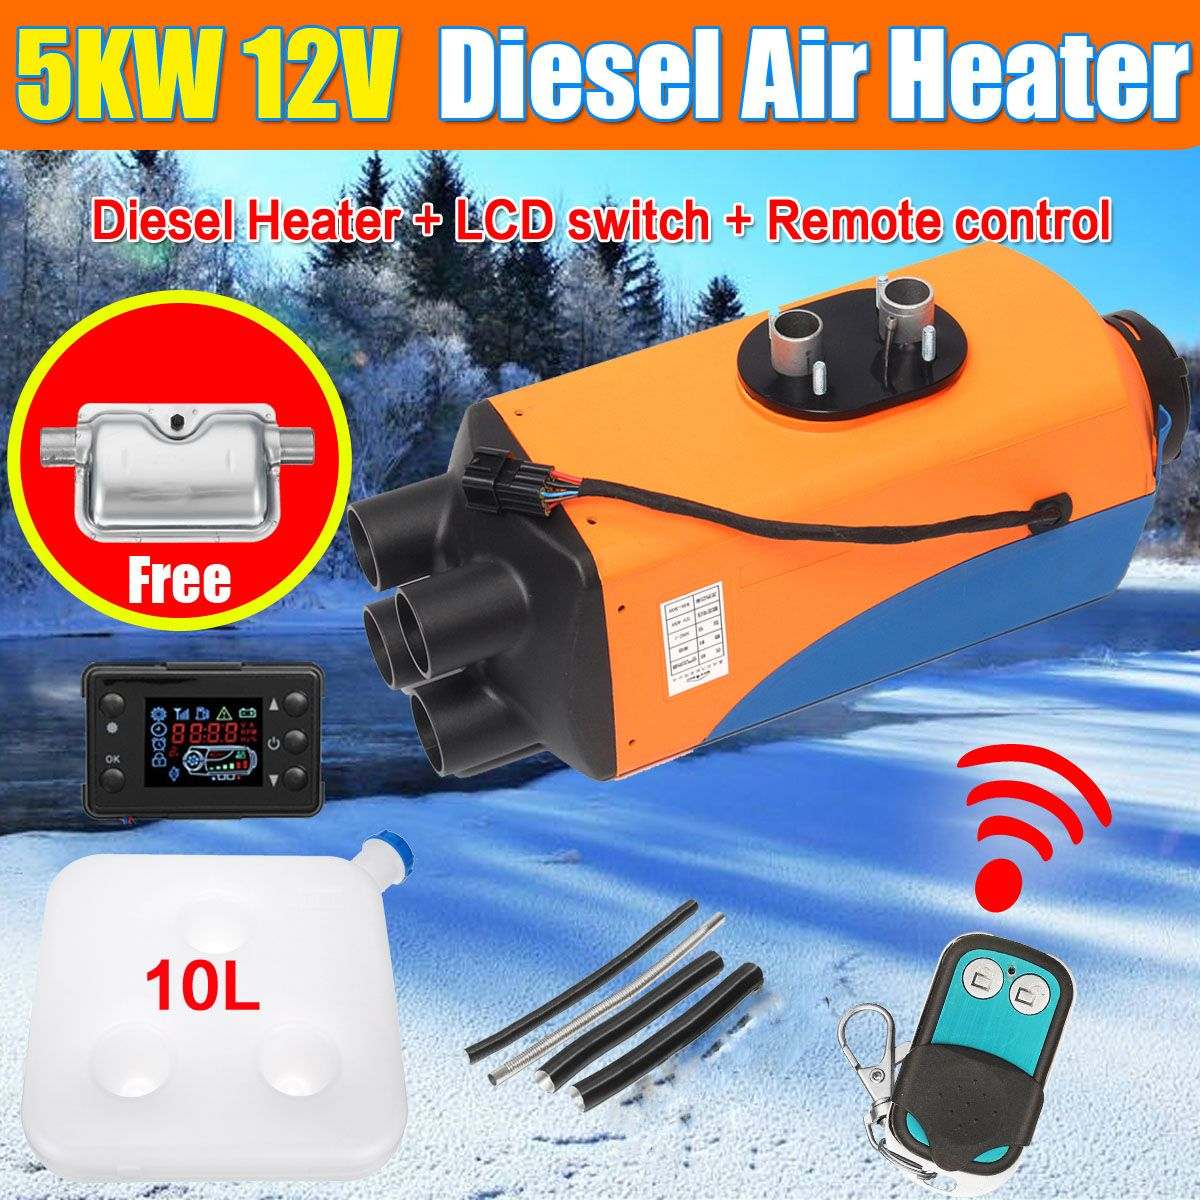 KROAK Car Heater 12V 5KW Air Diesels Heater Parking Heater With LCD Remote Control for RV Motorhome Trailer Trucks Boats